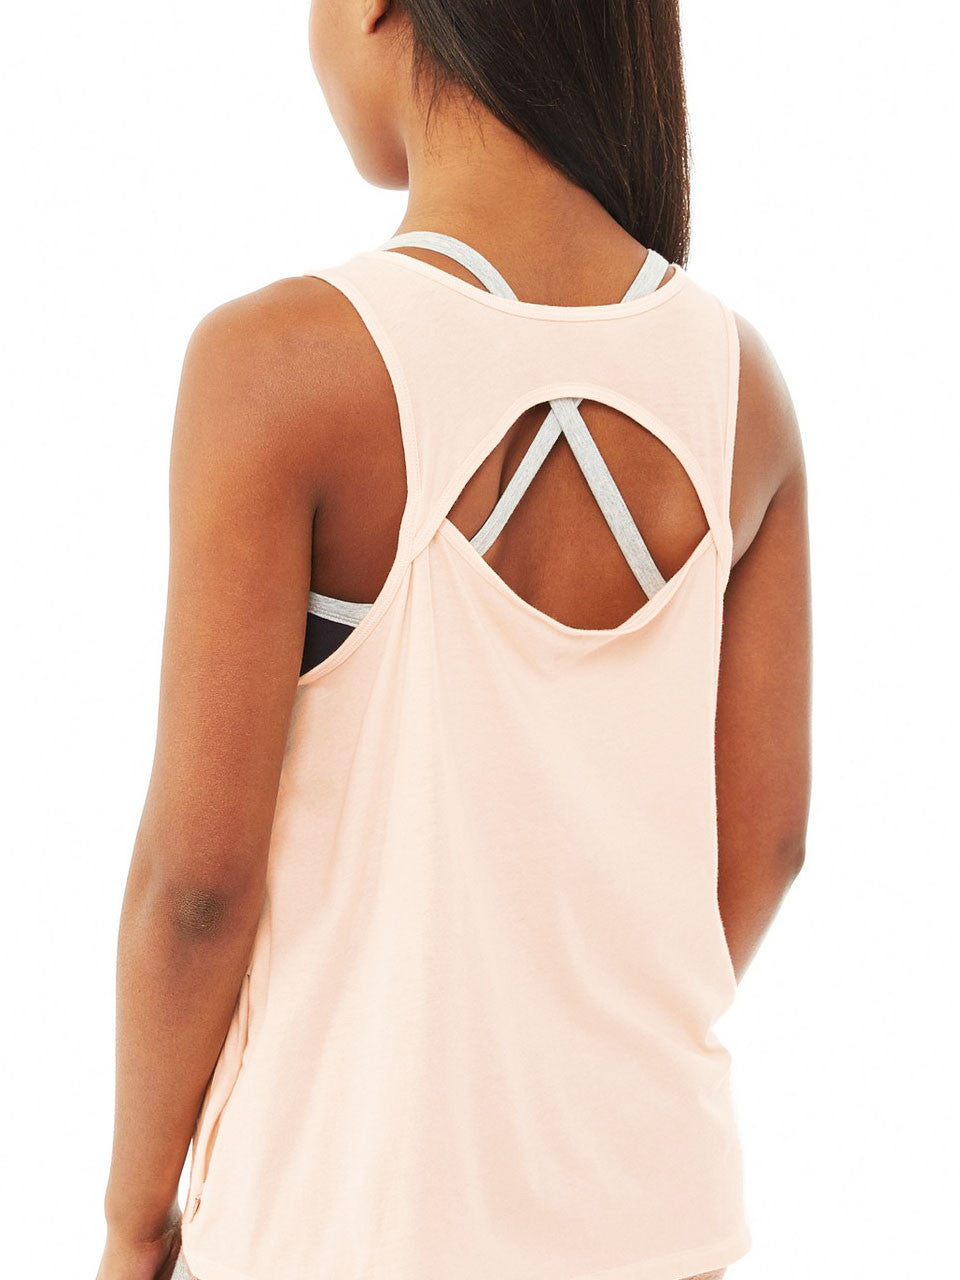 Back View Cut Out Zipper Pocket Yoga Tank - Blush Pink